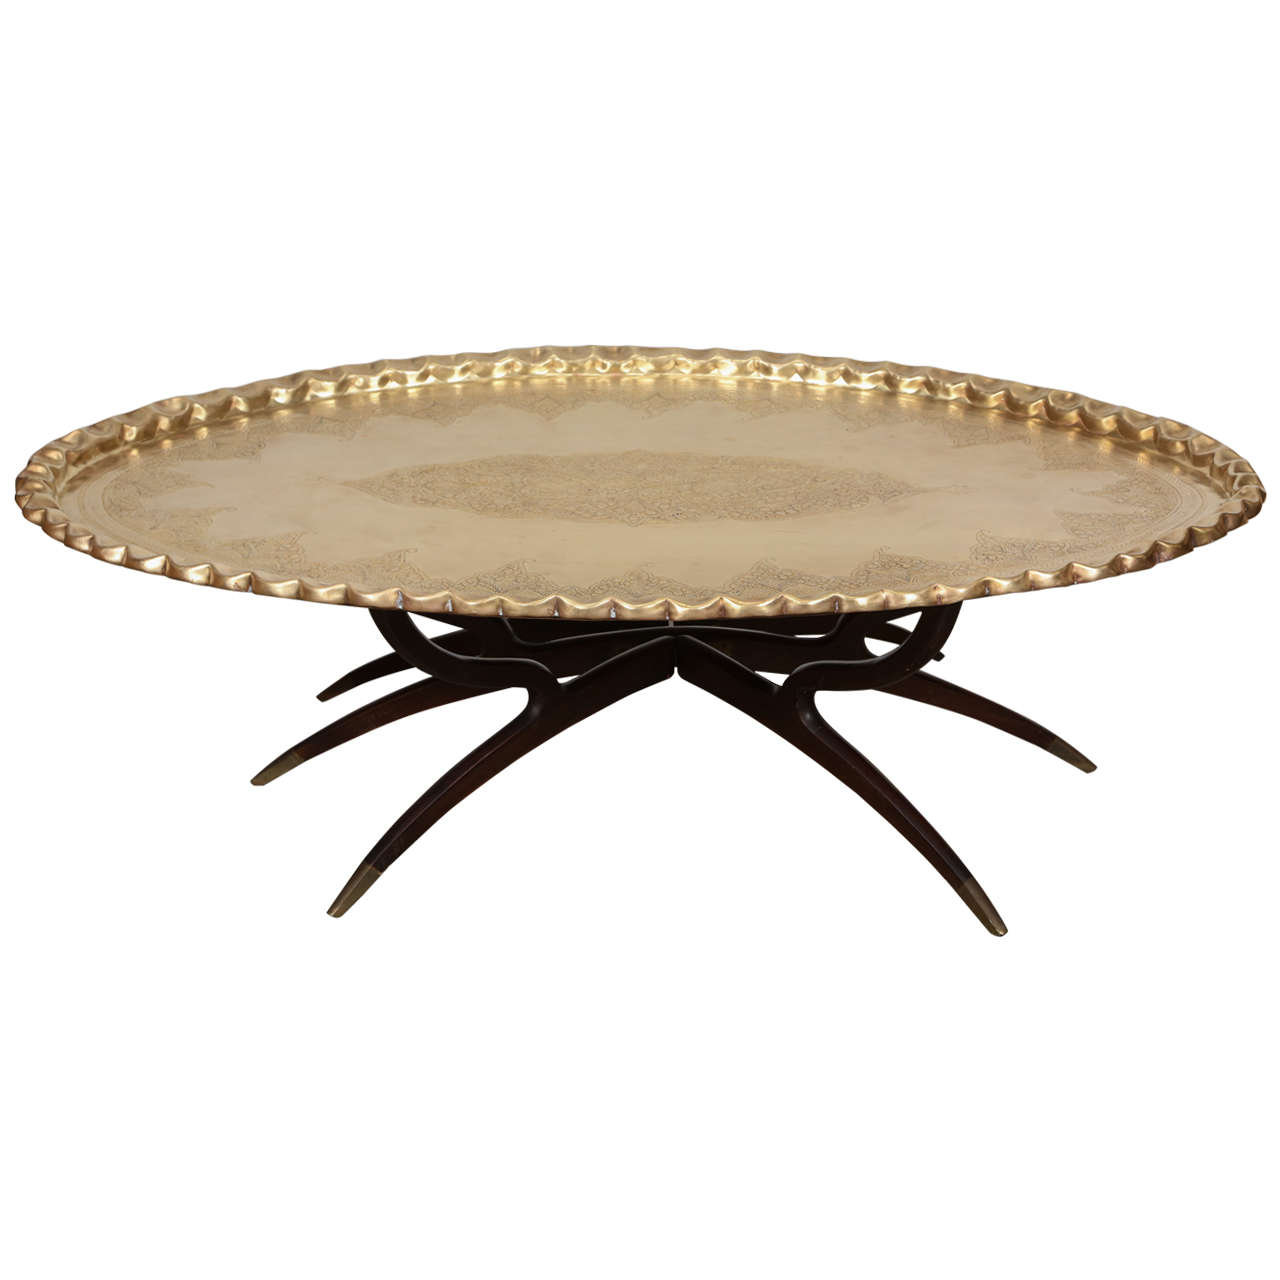 Brass Tray Coffee Table On Spider-Legs At 1stdibs